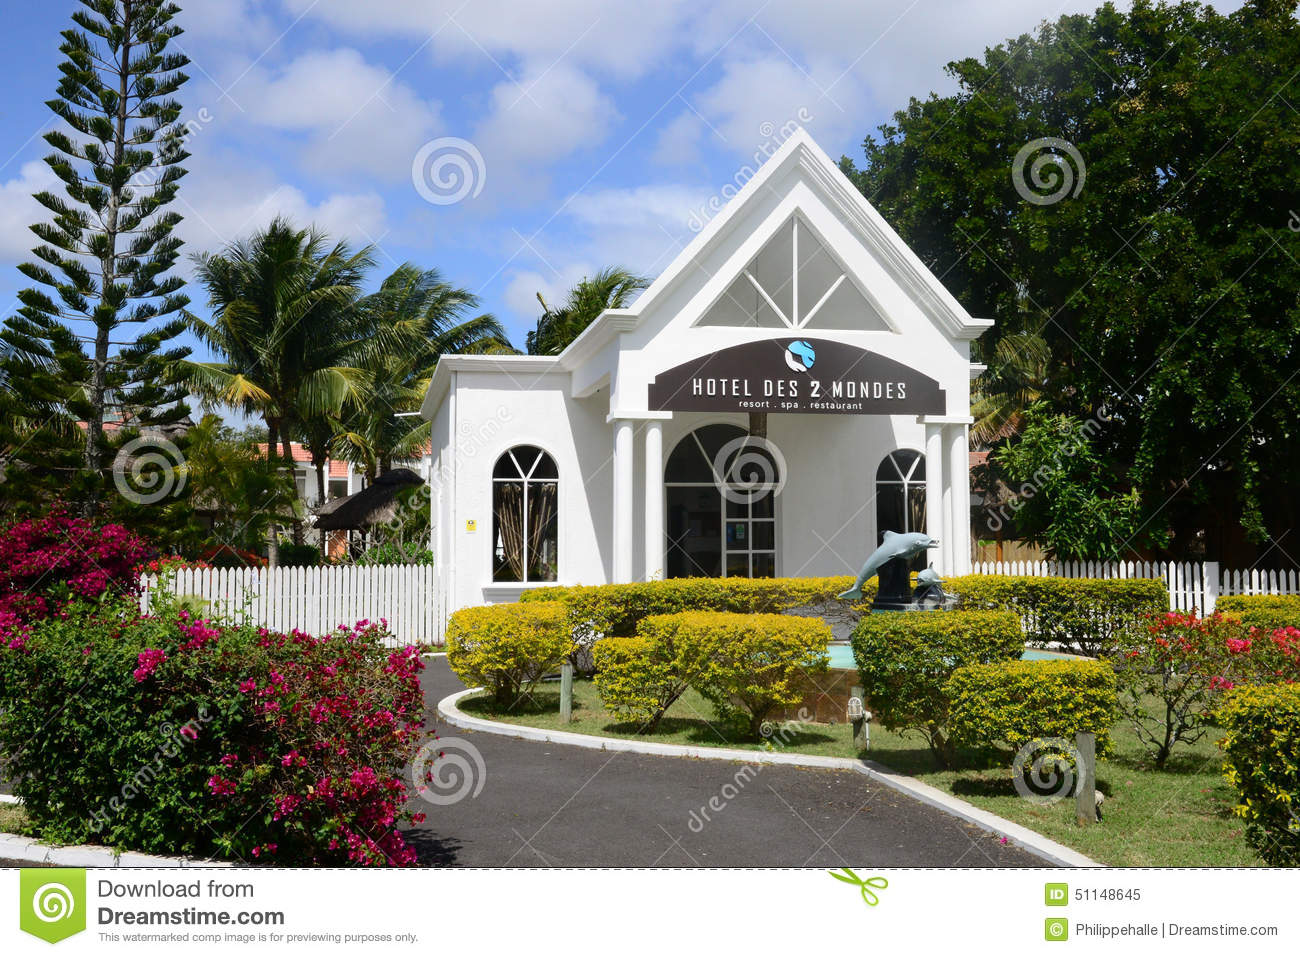 Hotel Des 2 Mondes Resort Spa Africa The Picturesque Village Of Mont Choisy In Mauritius